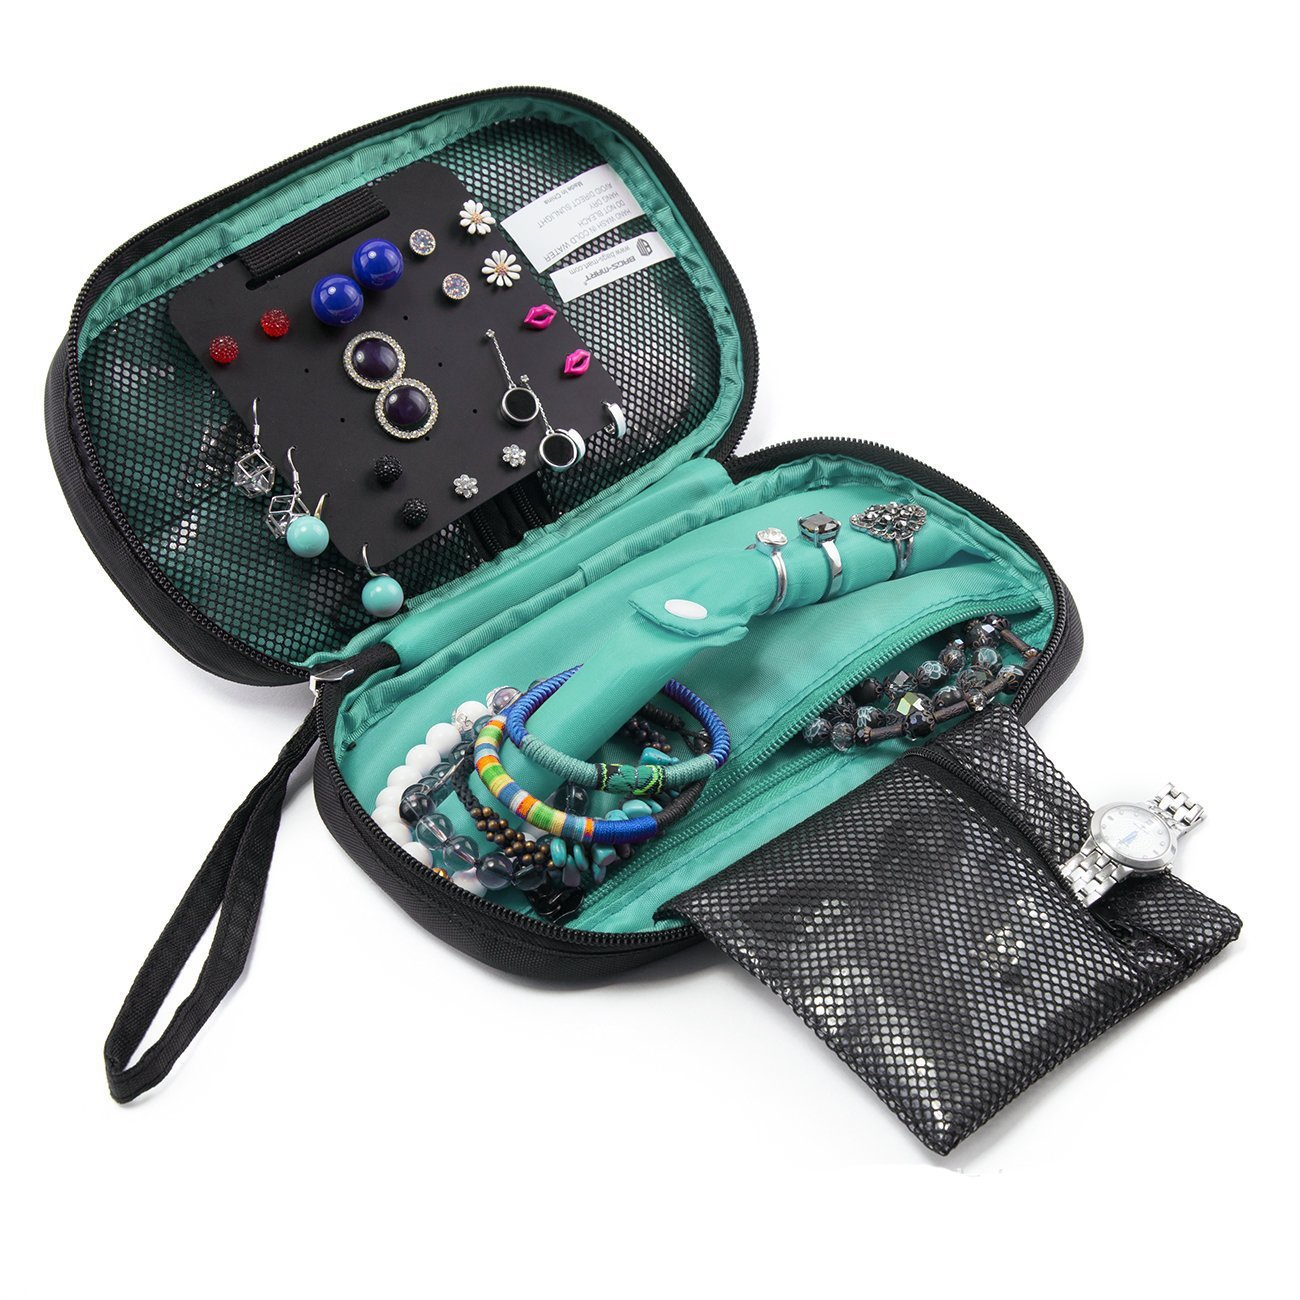 HOYOFO Portable Jewelry Bags with Straps Travel Jewelry Organizer Case for Women Black Storage for Jelelries